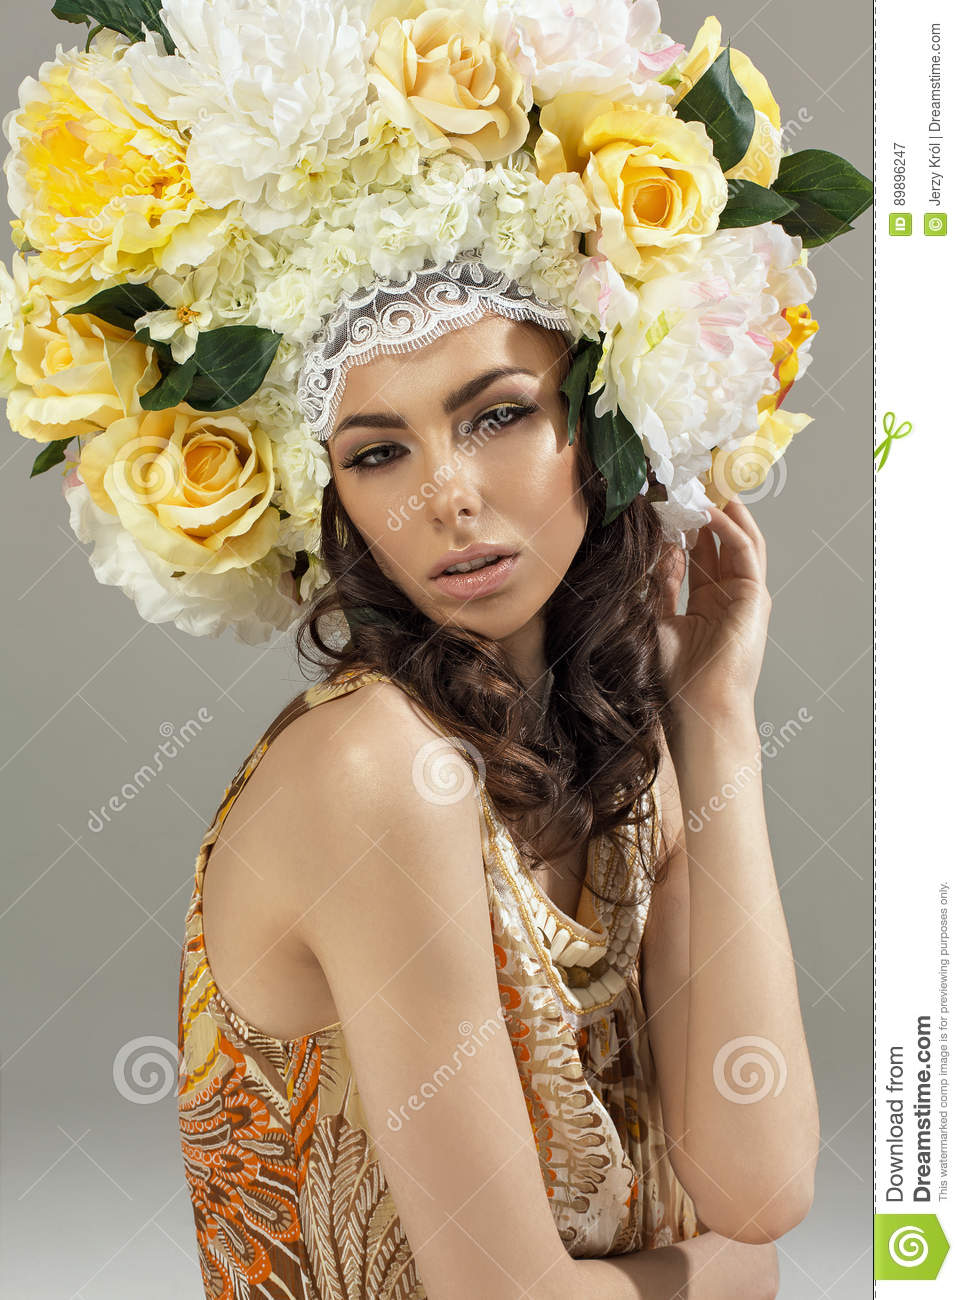 Portrait of woman with floral crown stock image image of girl a woman wearing a large headpiece with white and yellow flowers mightylinksfo